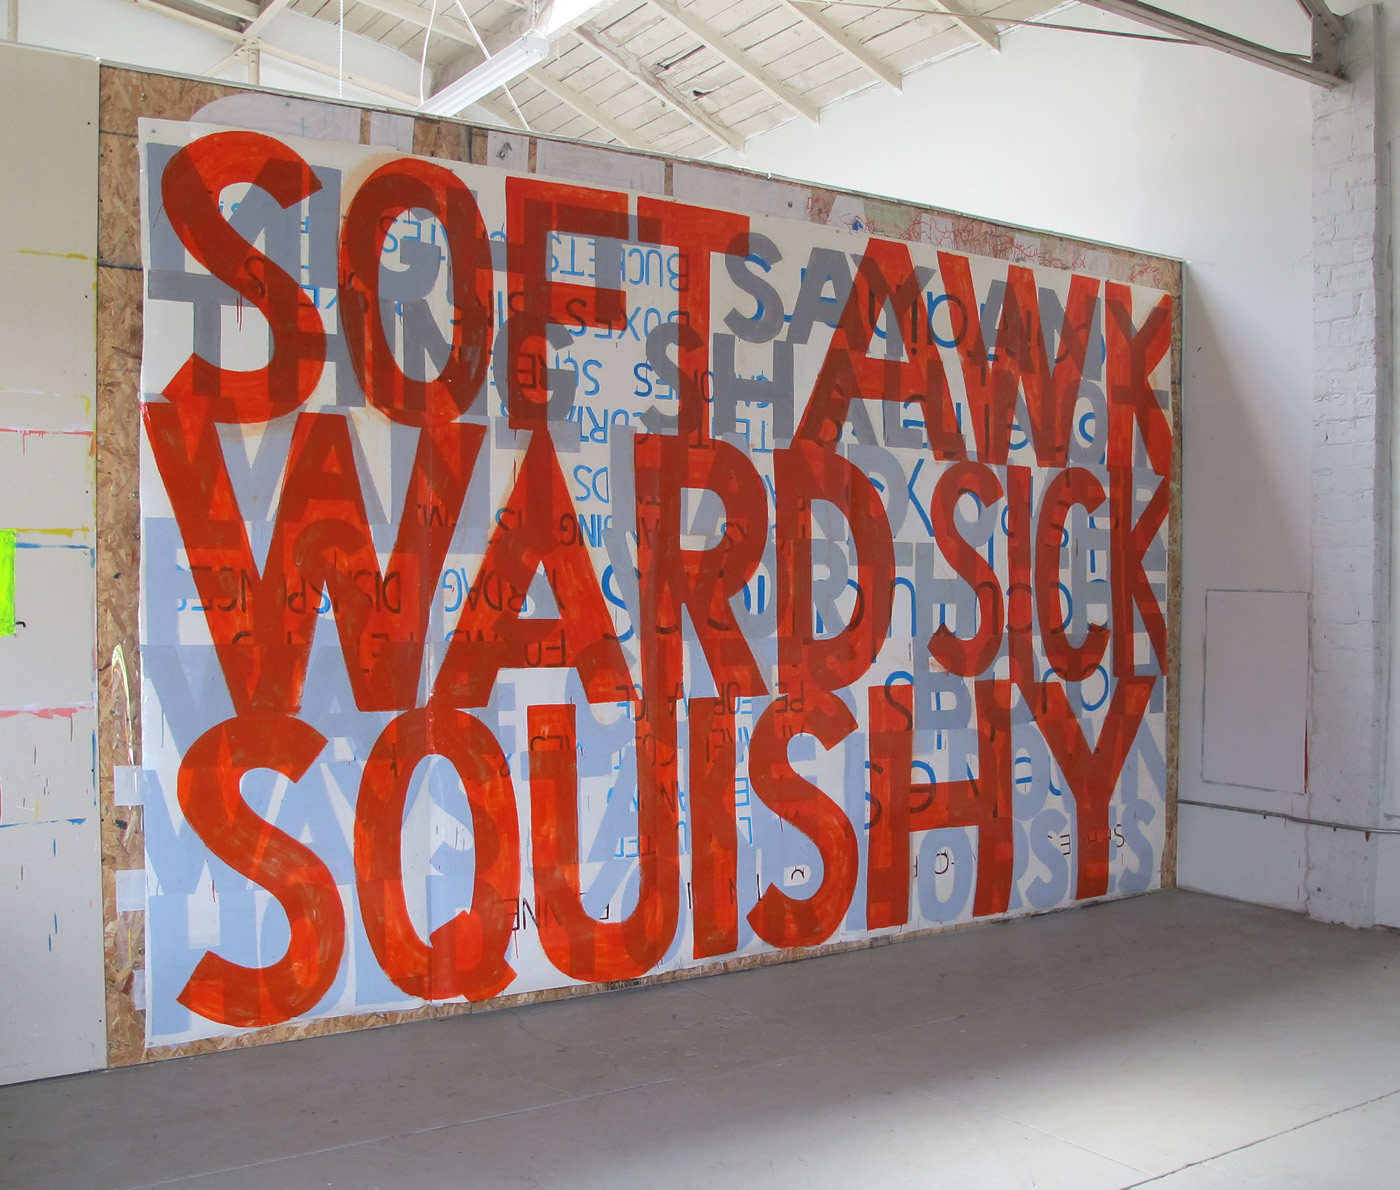 "SOFT AWKWARD SICK SQUISHY 2009-11  Sign paint on laminated digital print. ~200"" x 120"""